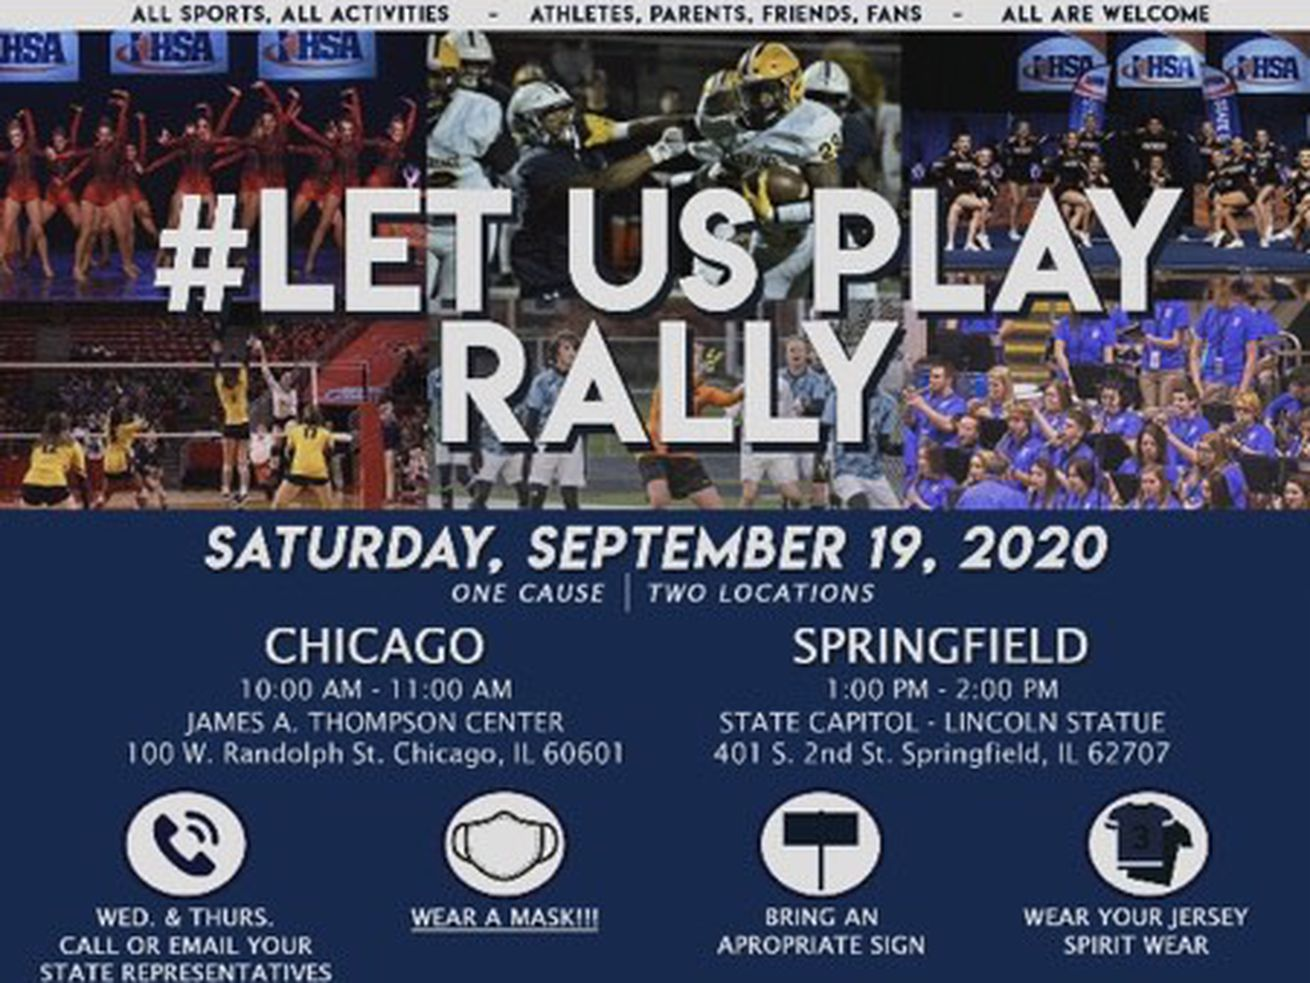 The flyer for the Let Us Play rally this weekend.